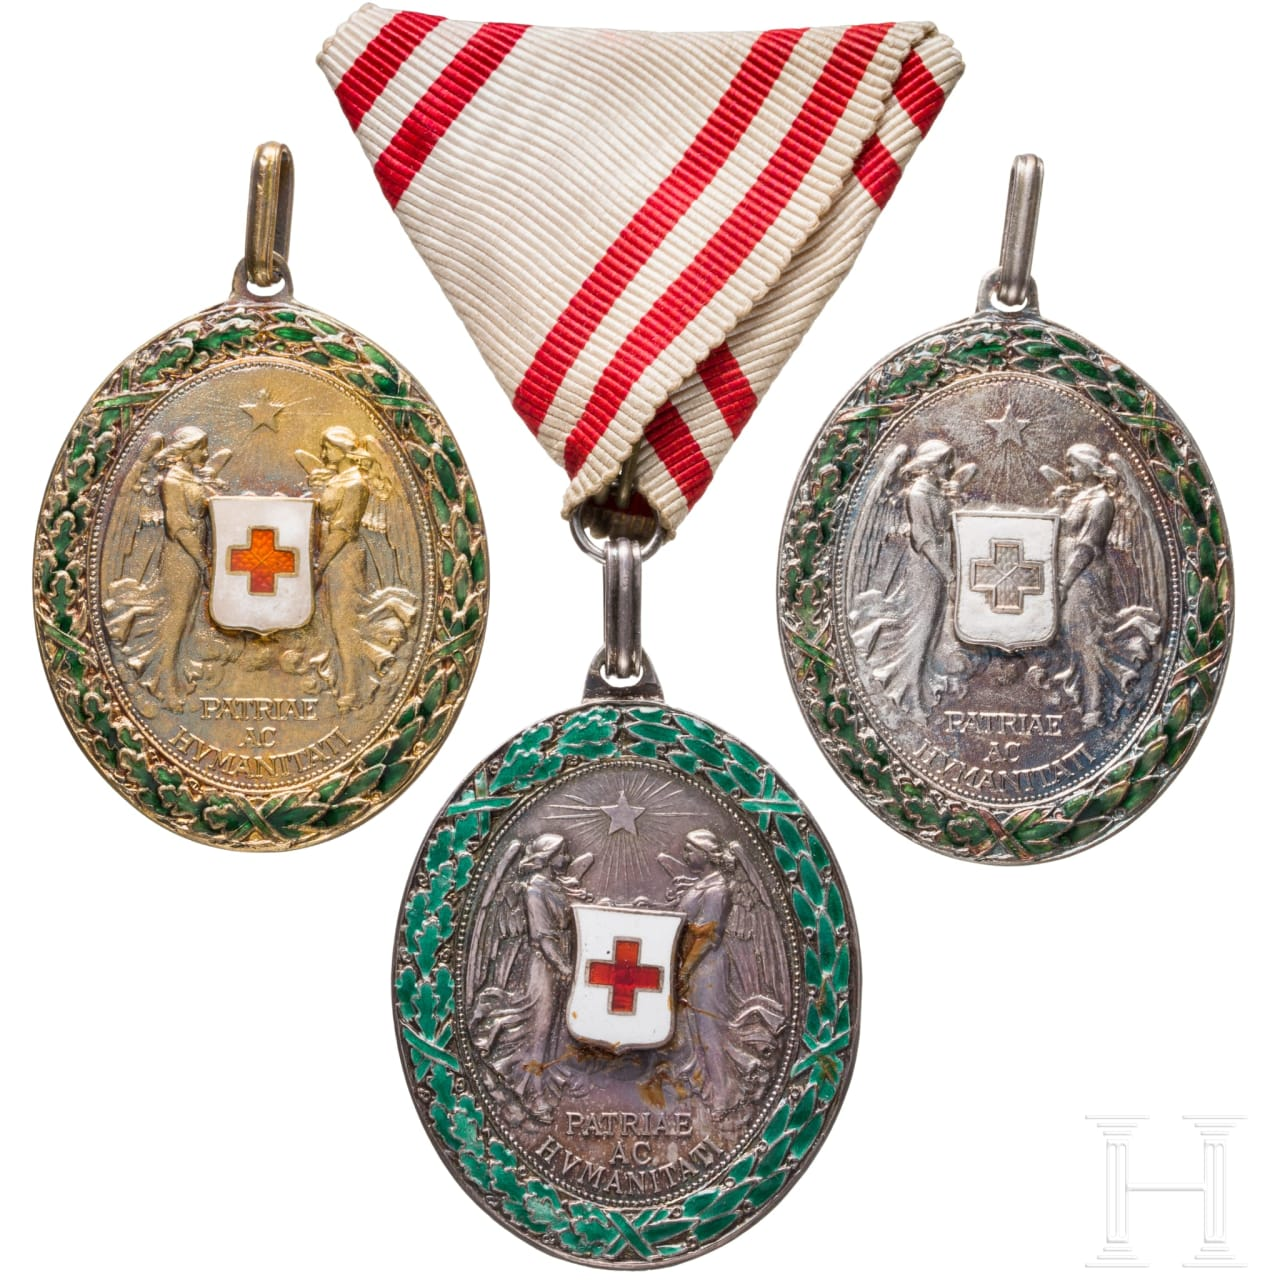 Three Red-Cross medals